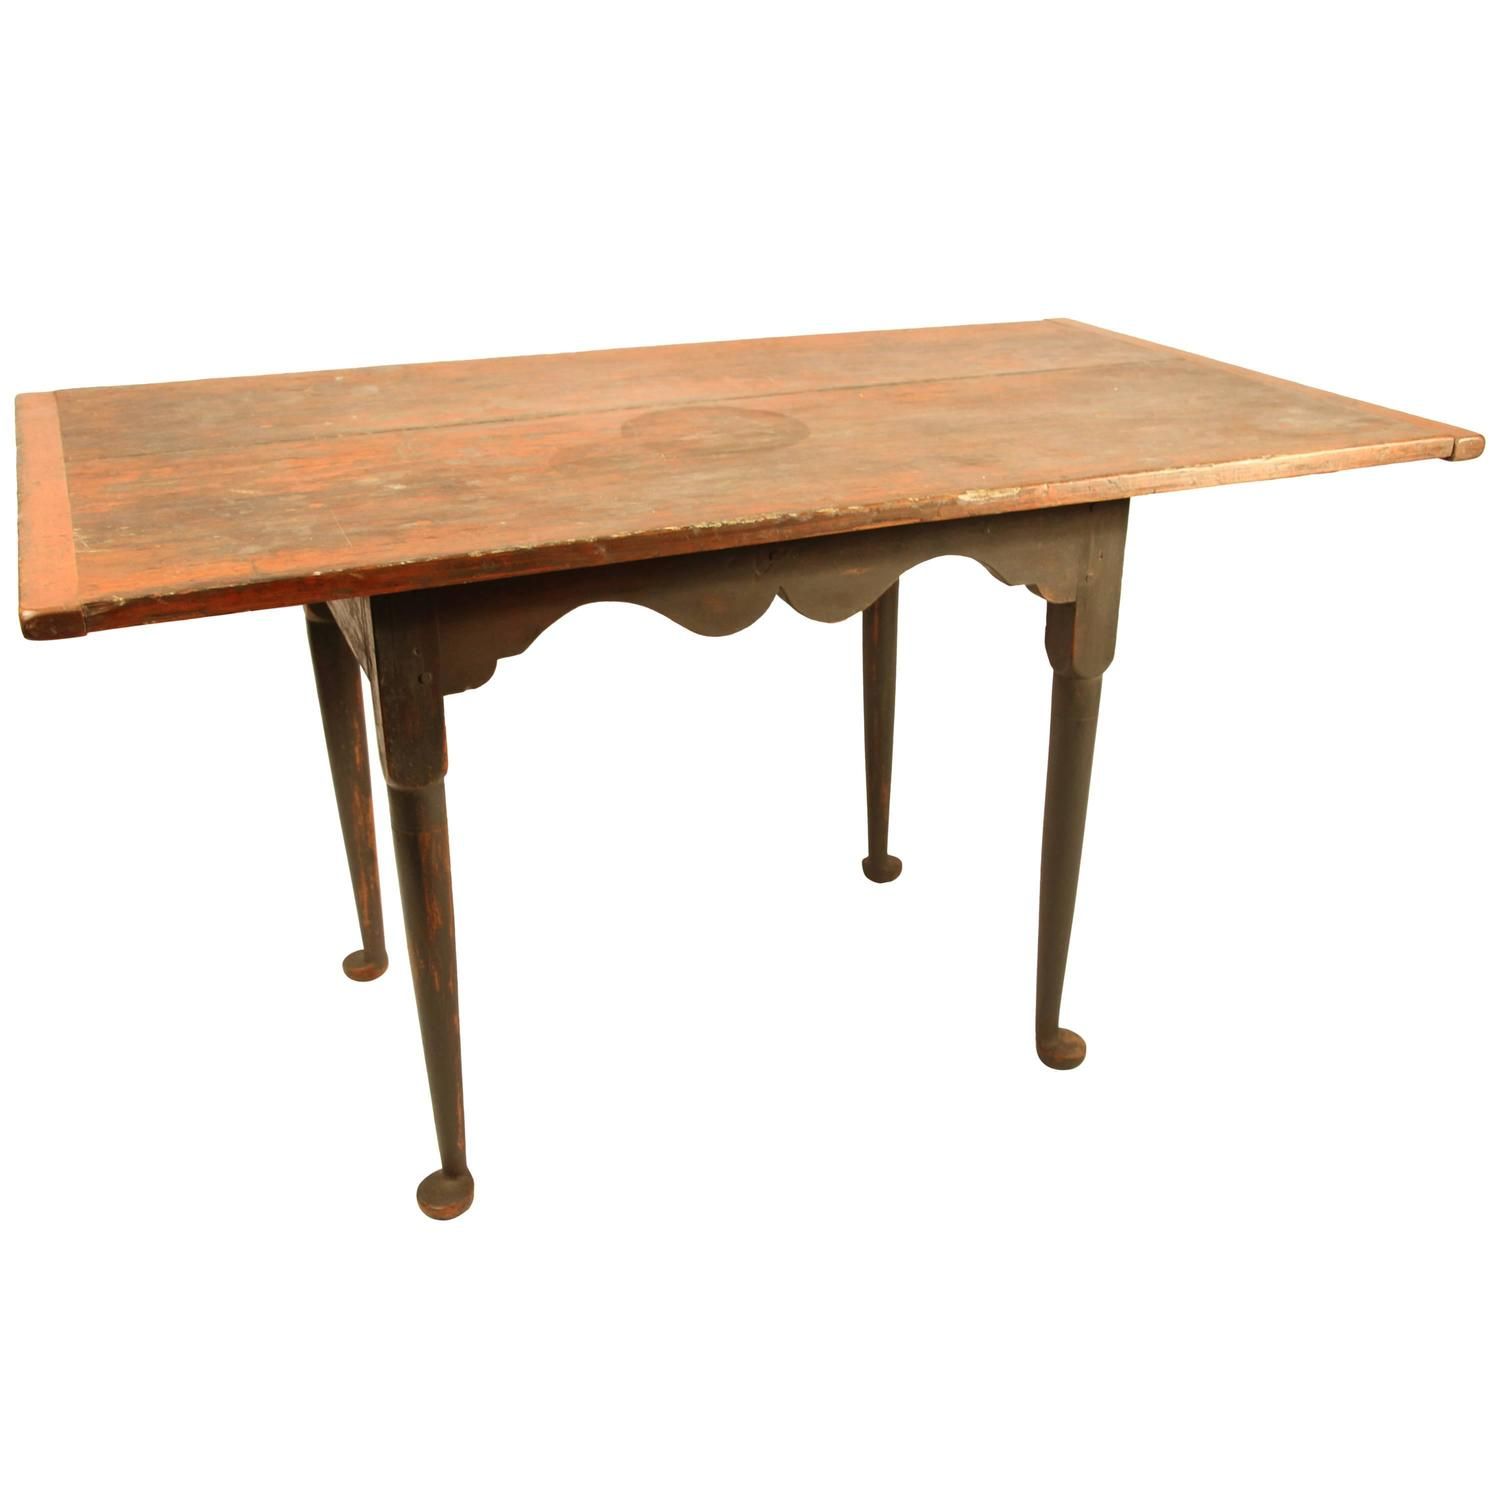 18th century new england drop leaf tavern table for sale at 1stdibs